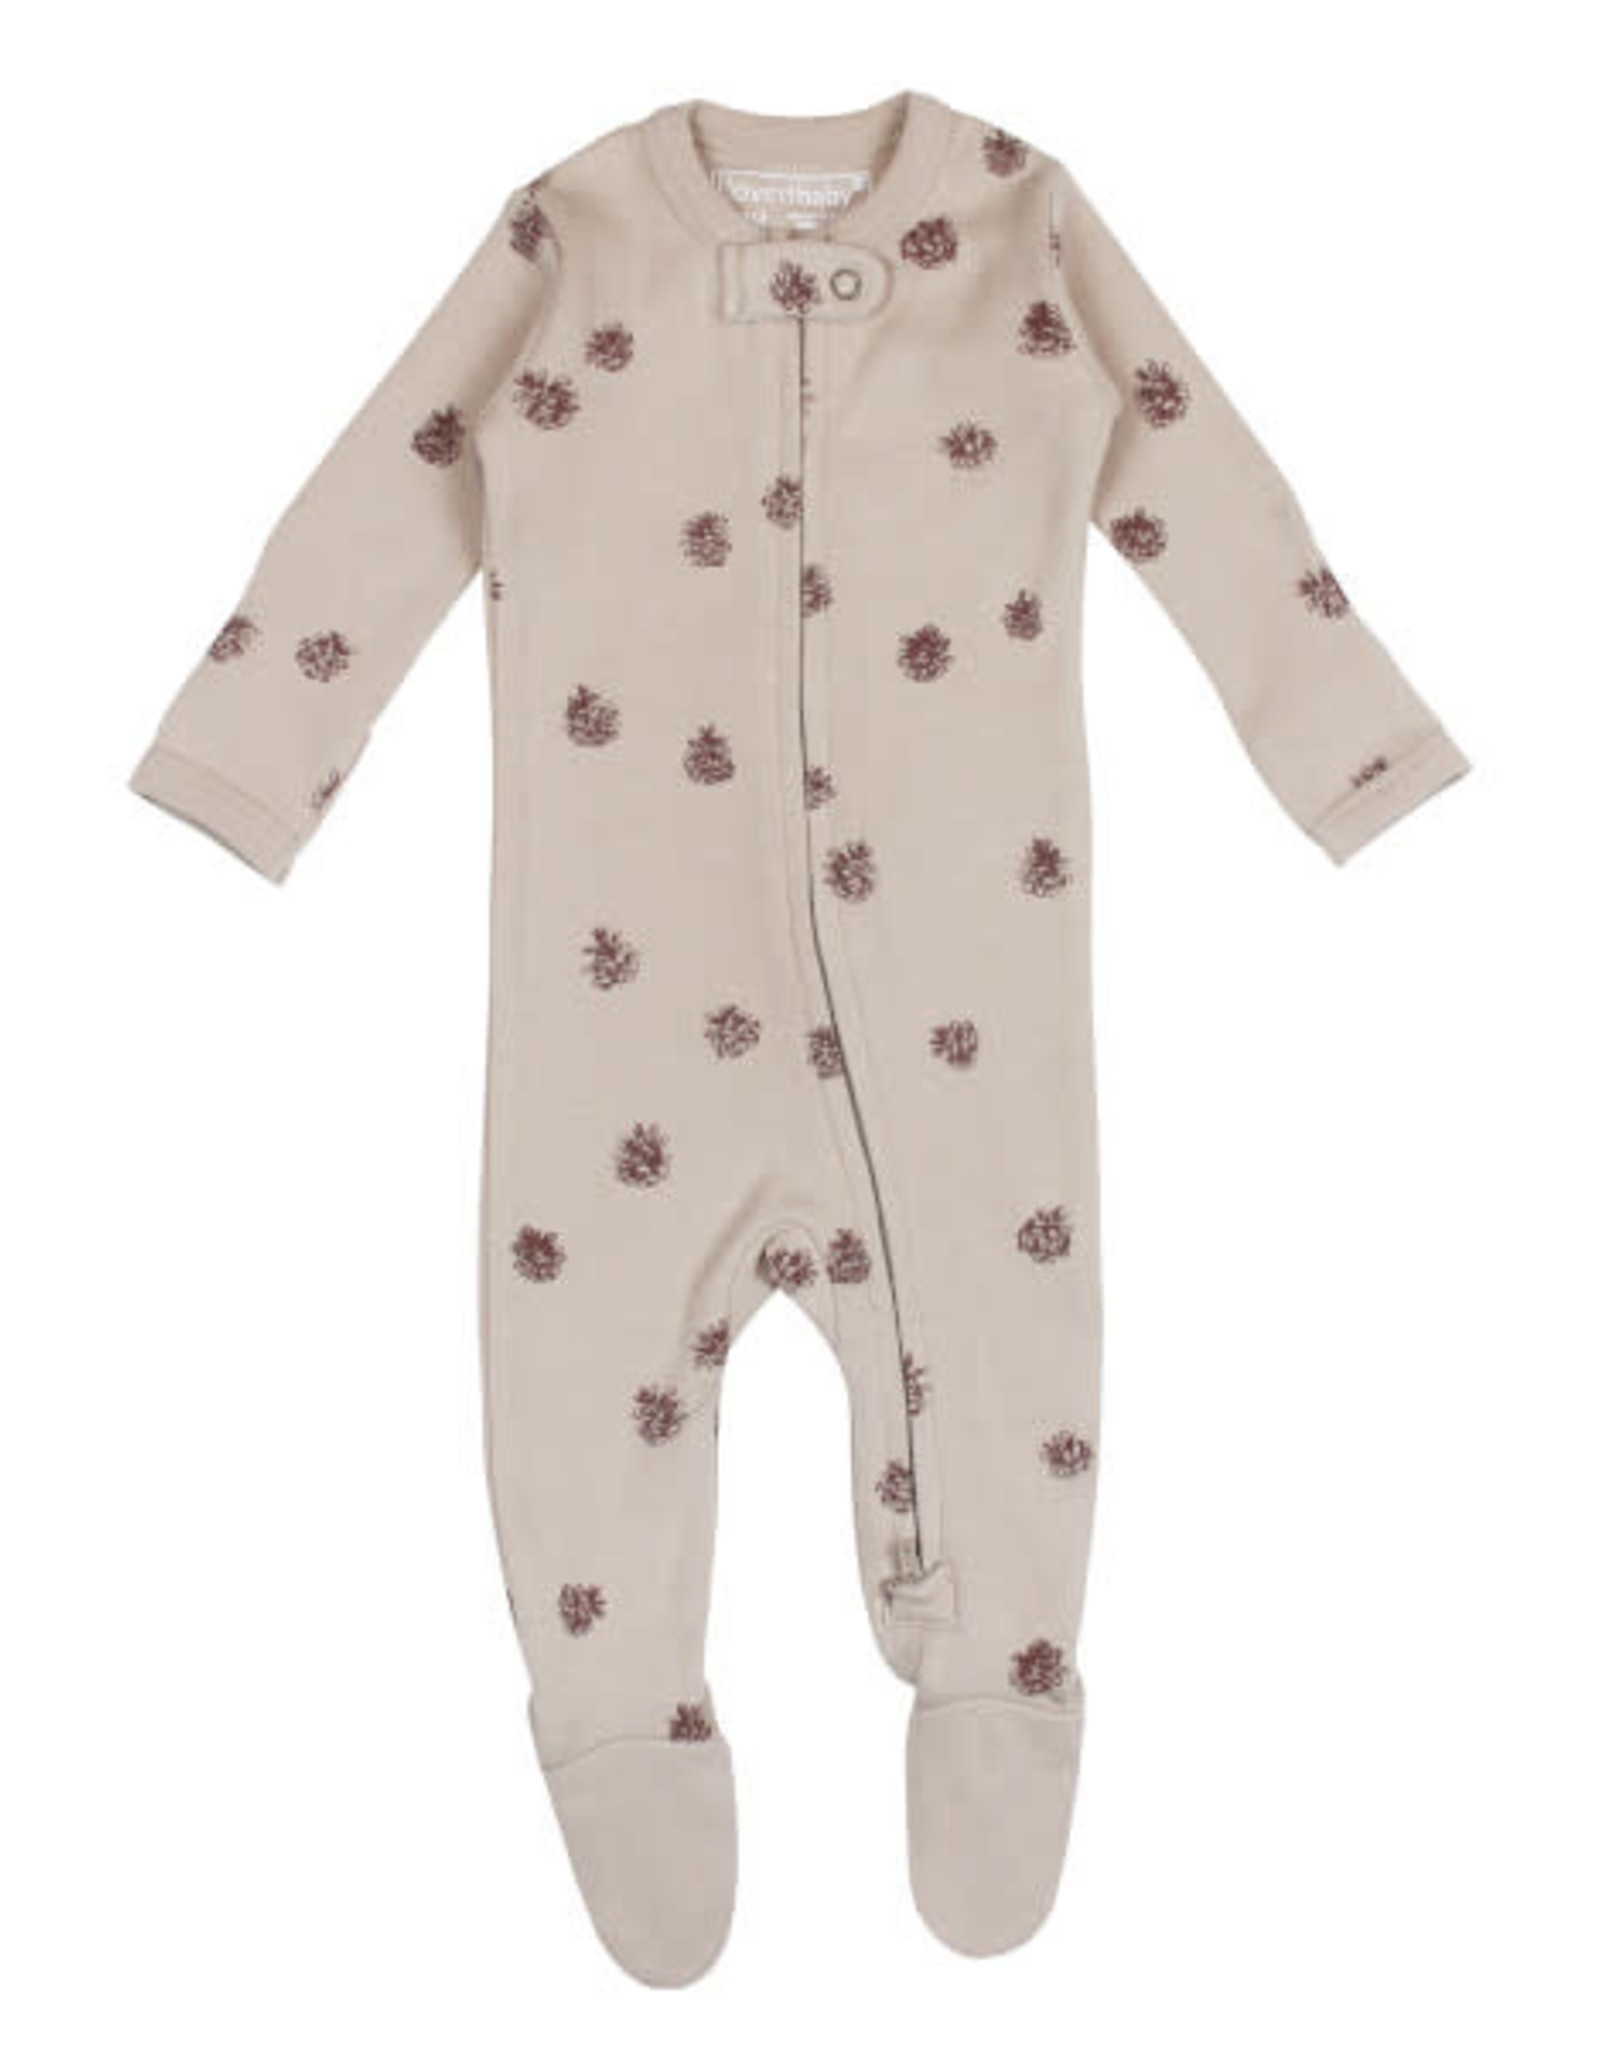 L'oved Baby Oatmeal Zippered Footie with Pinecone Print